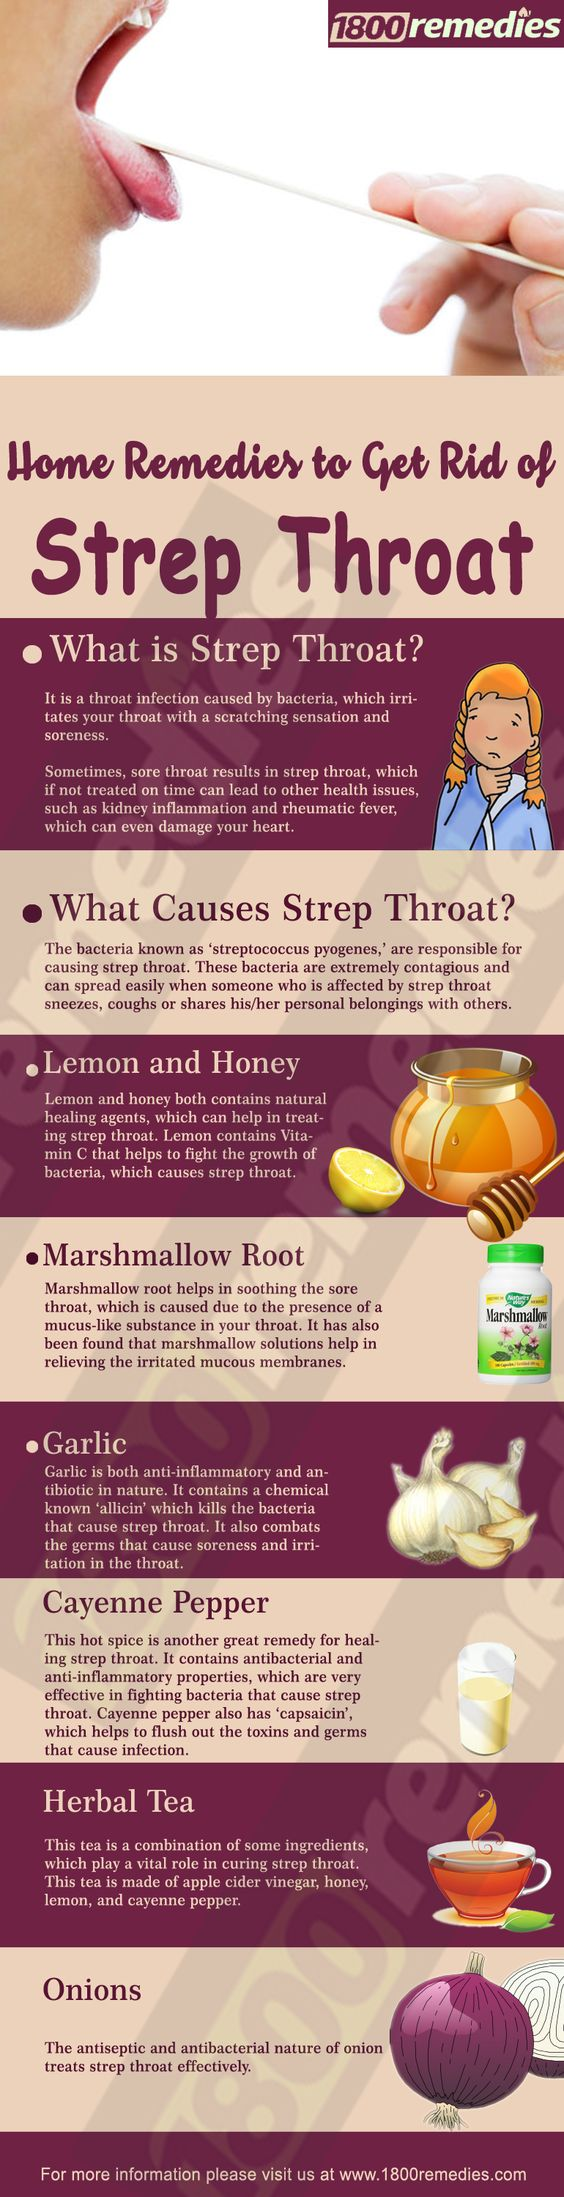 Herbs for strep throat accept